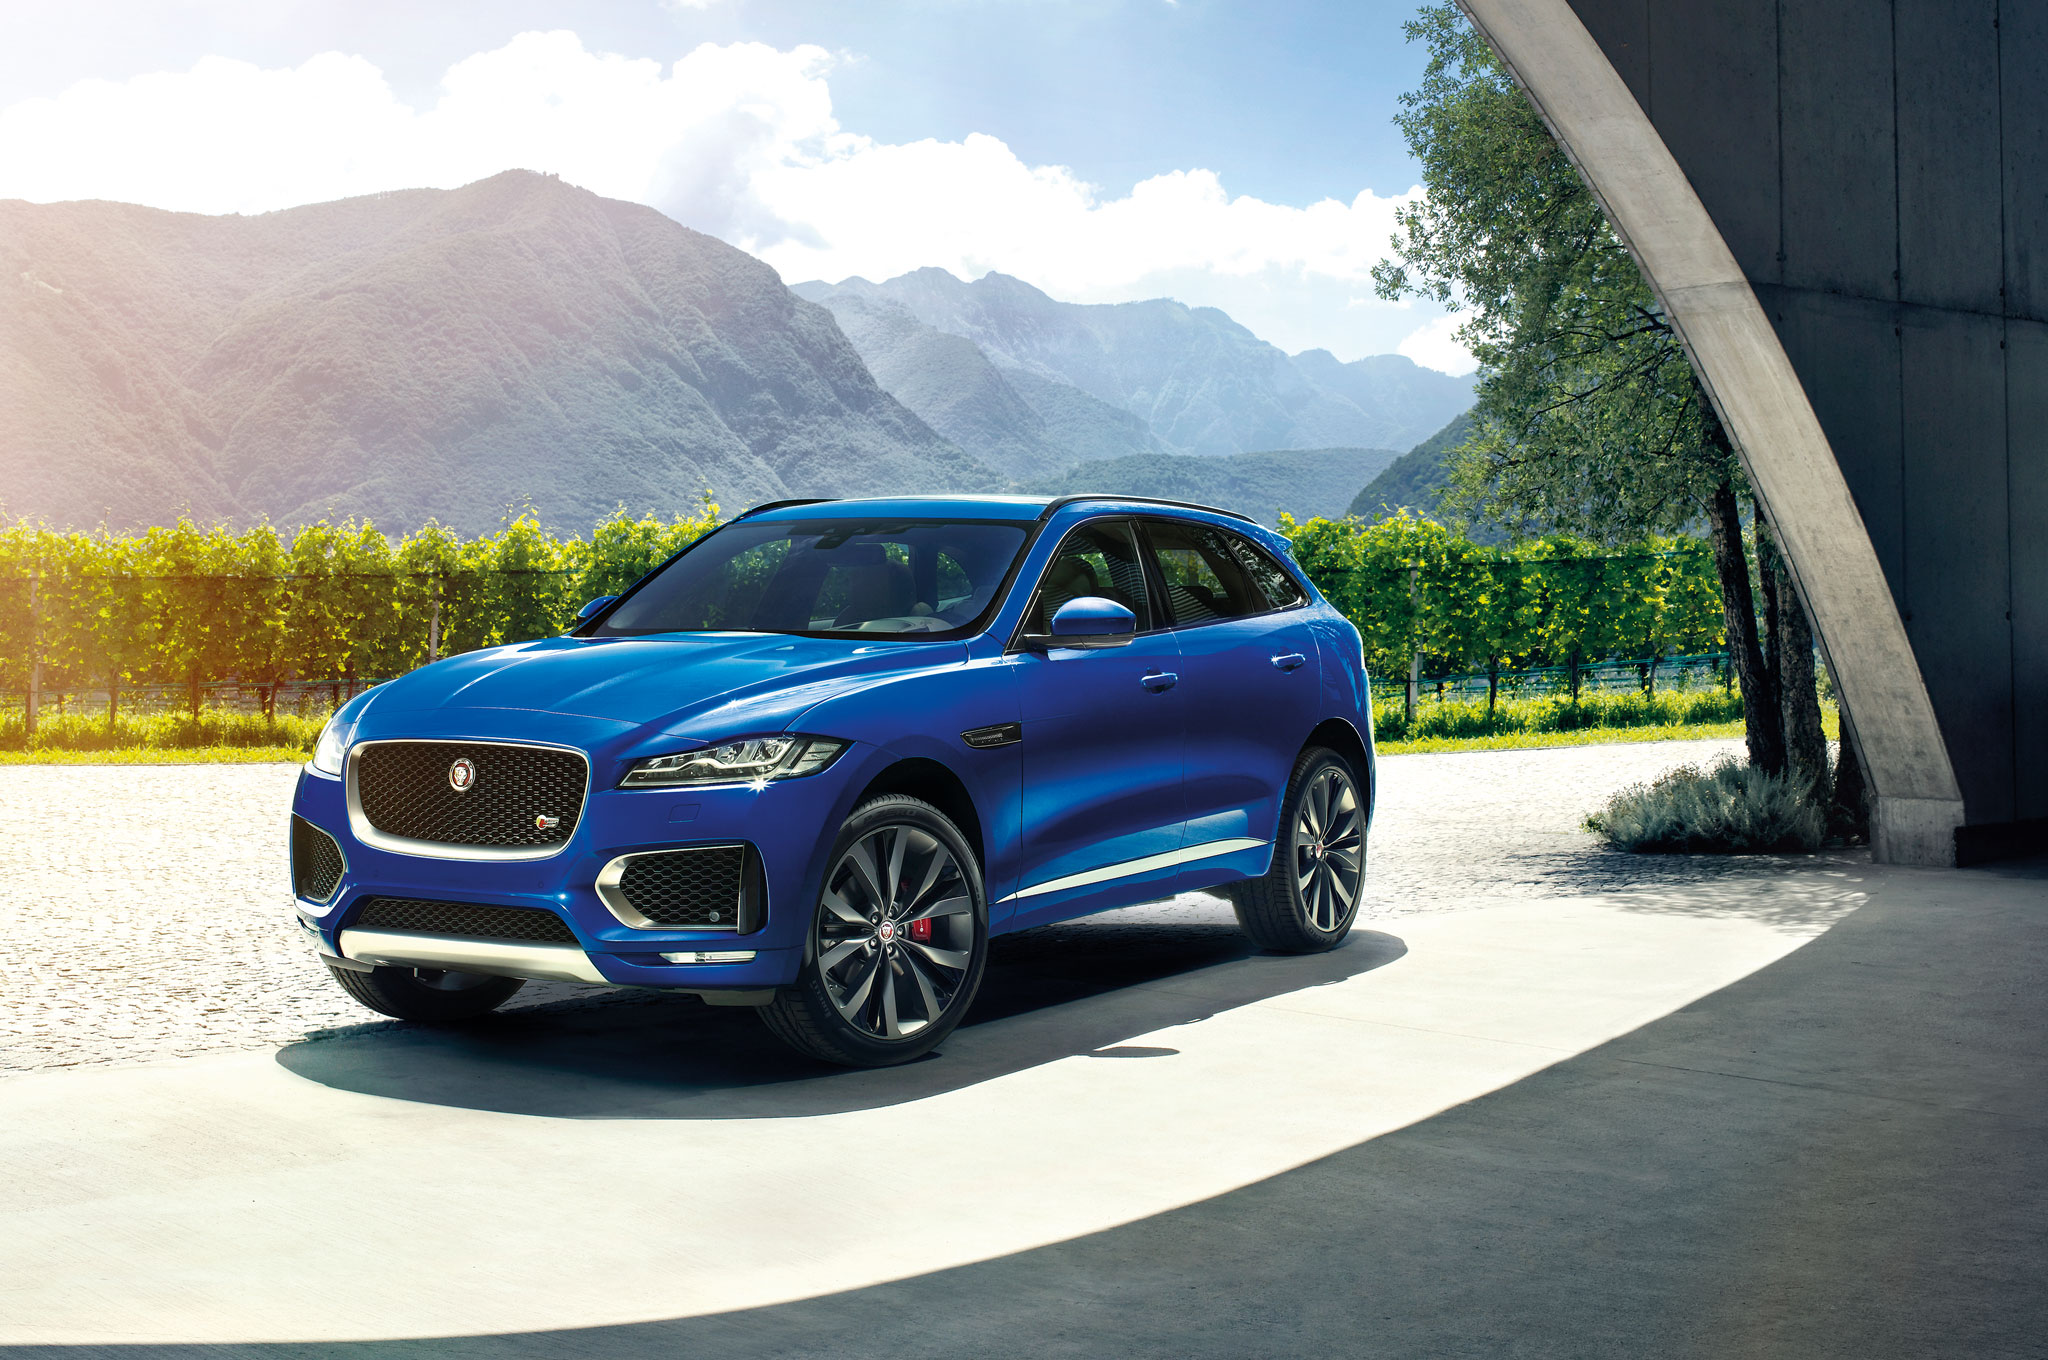 Jaguar Introduces New Ingenium Gas Engine for 2018 F-Pace